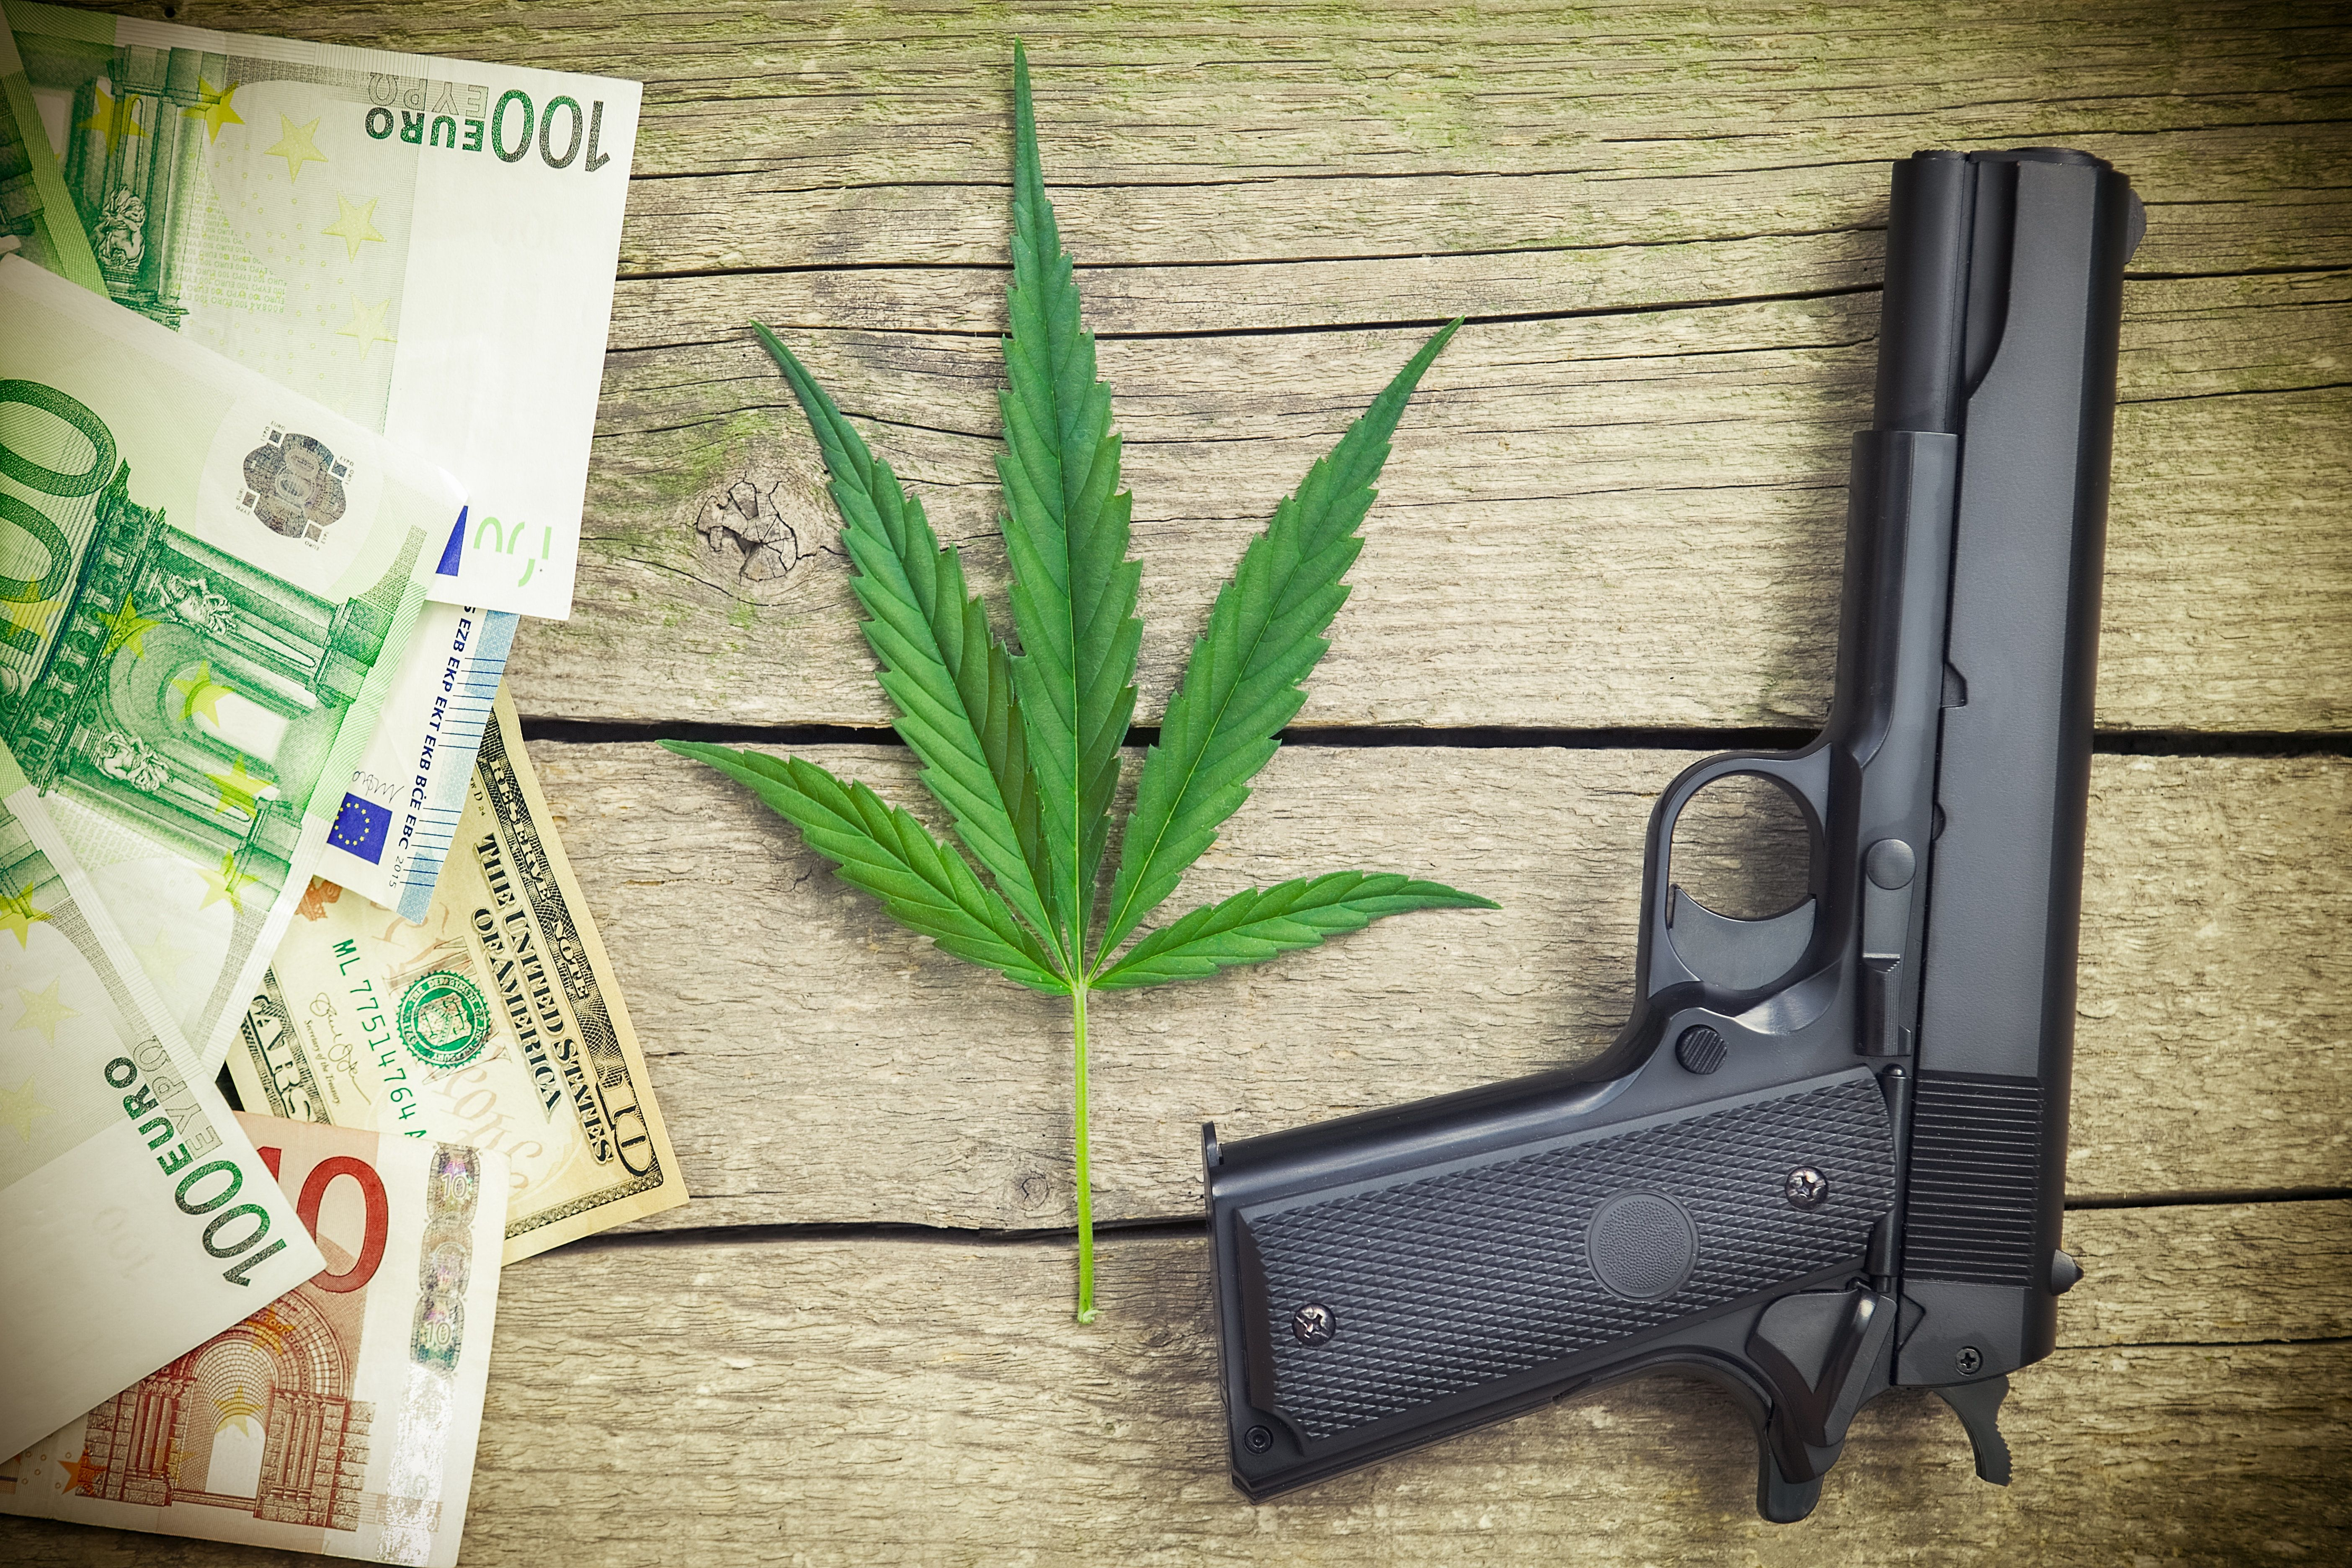 Cannabis leaf with banknotes and pistol on the table